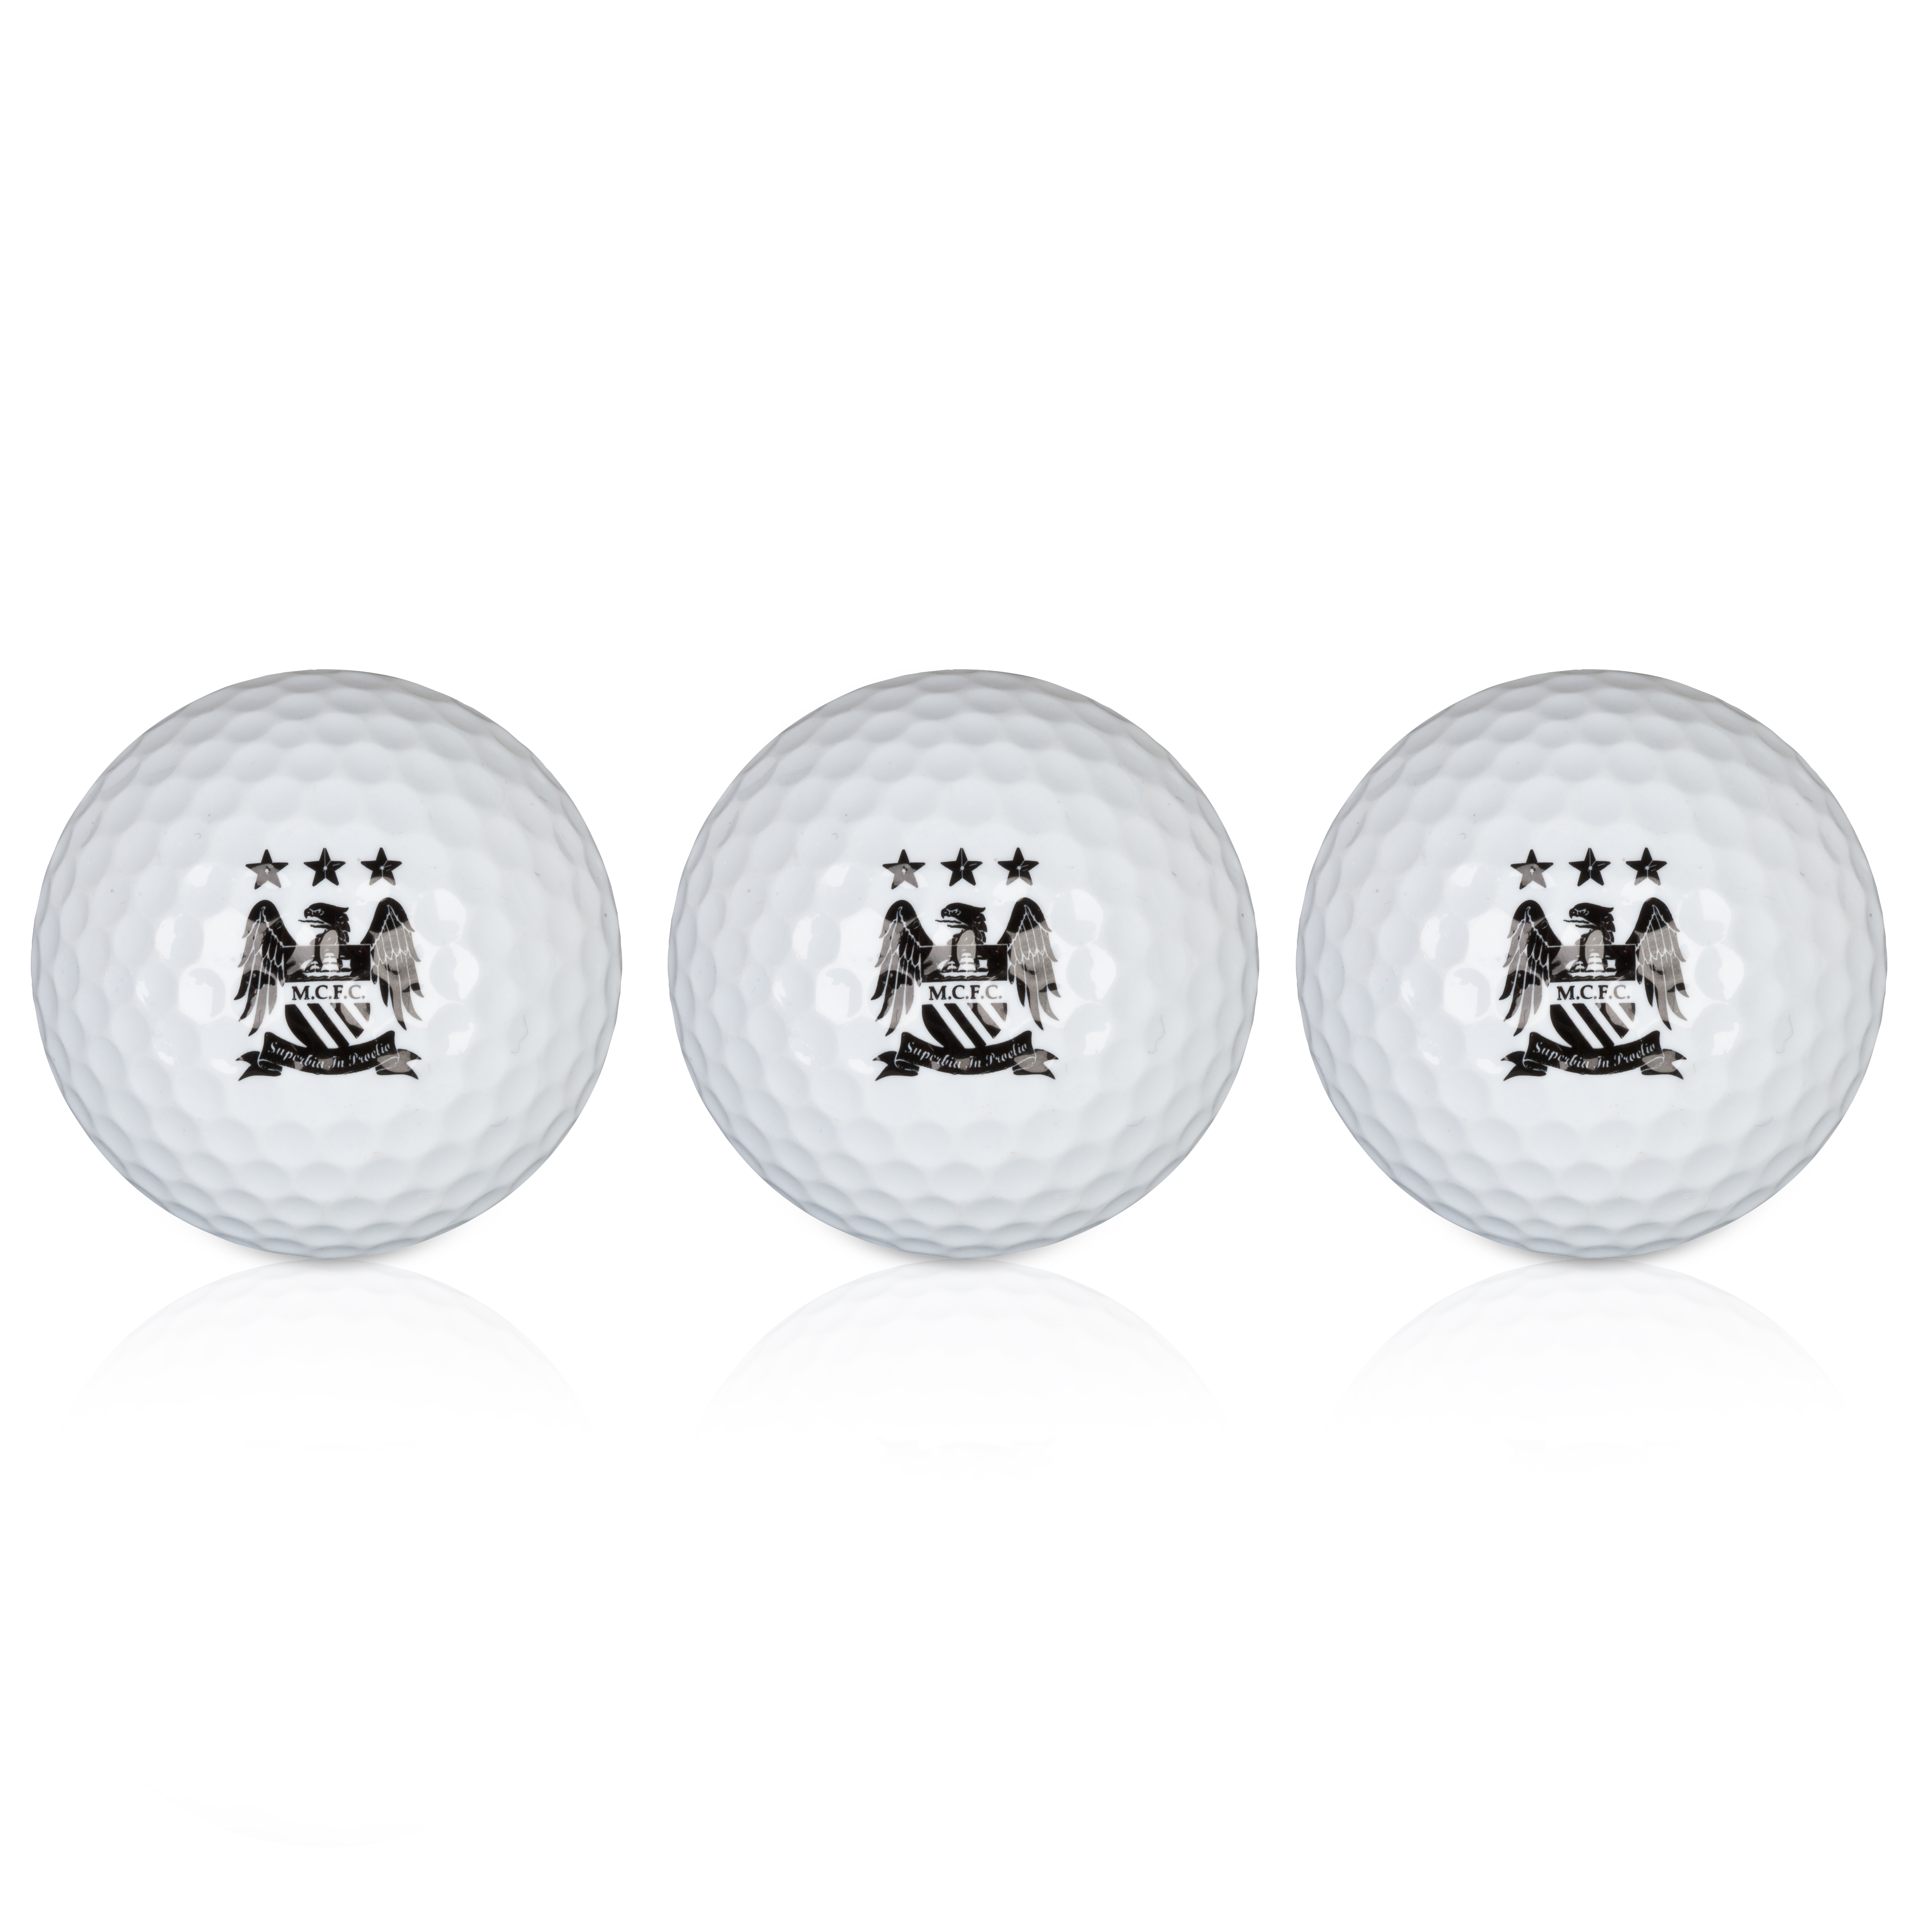 Manchester City Executive Golf Balls 3 Pack